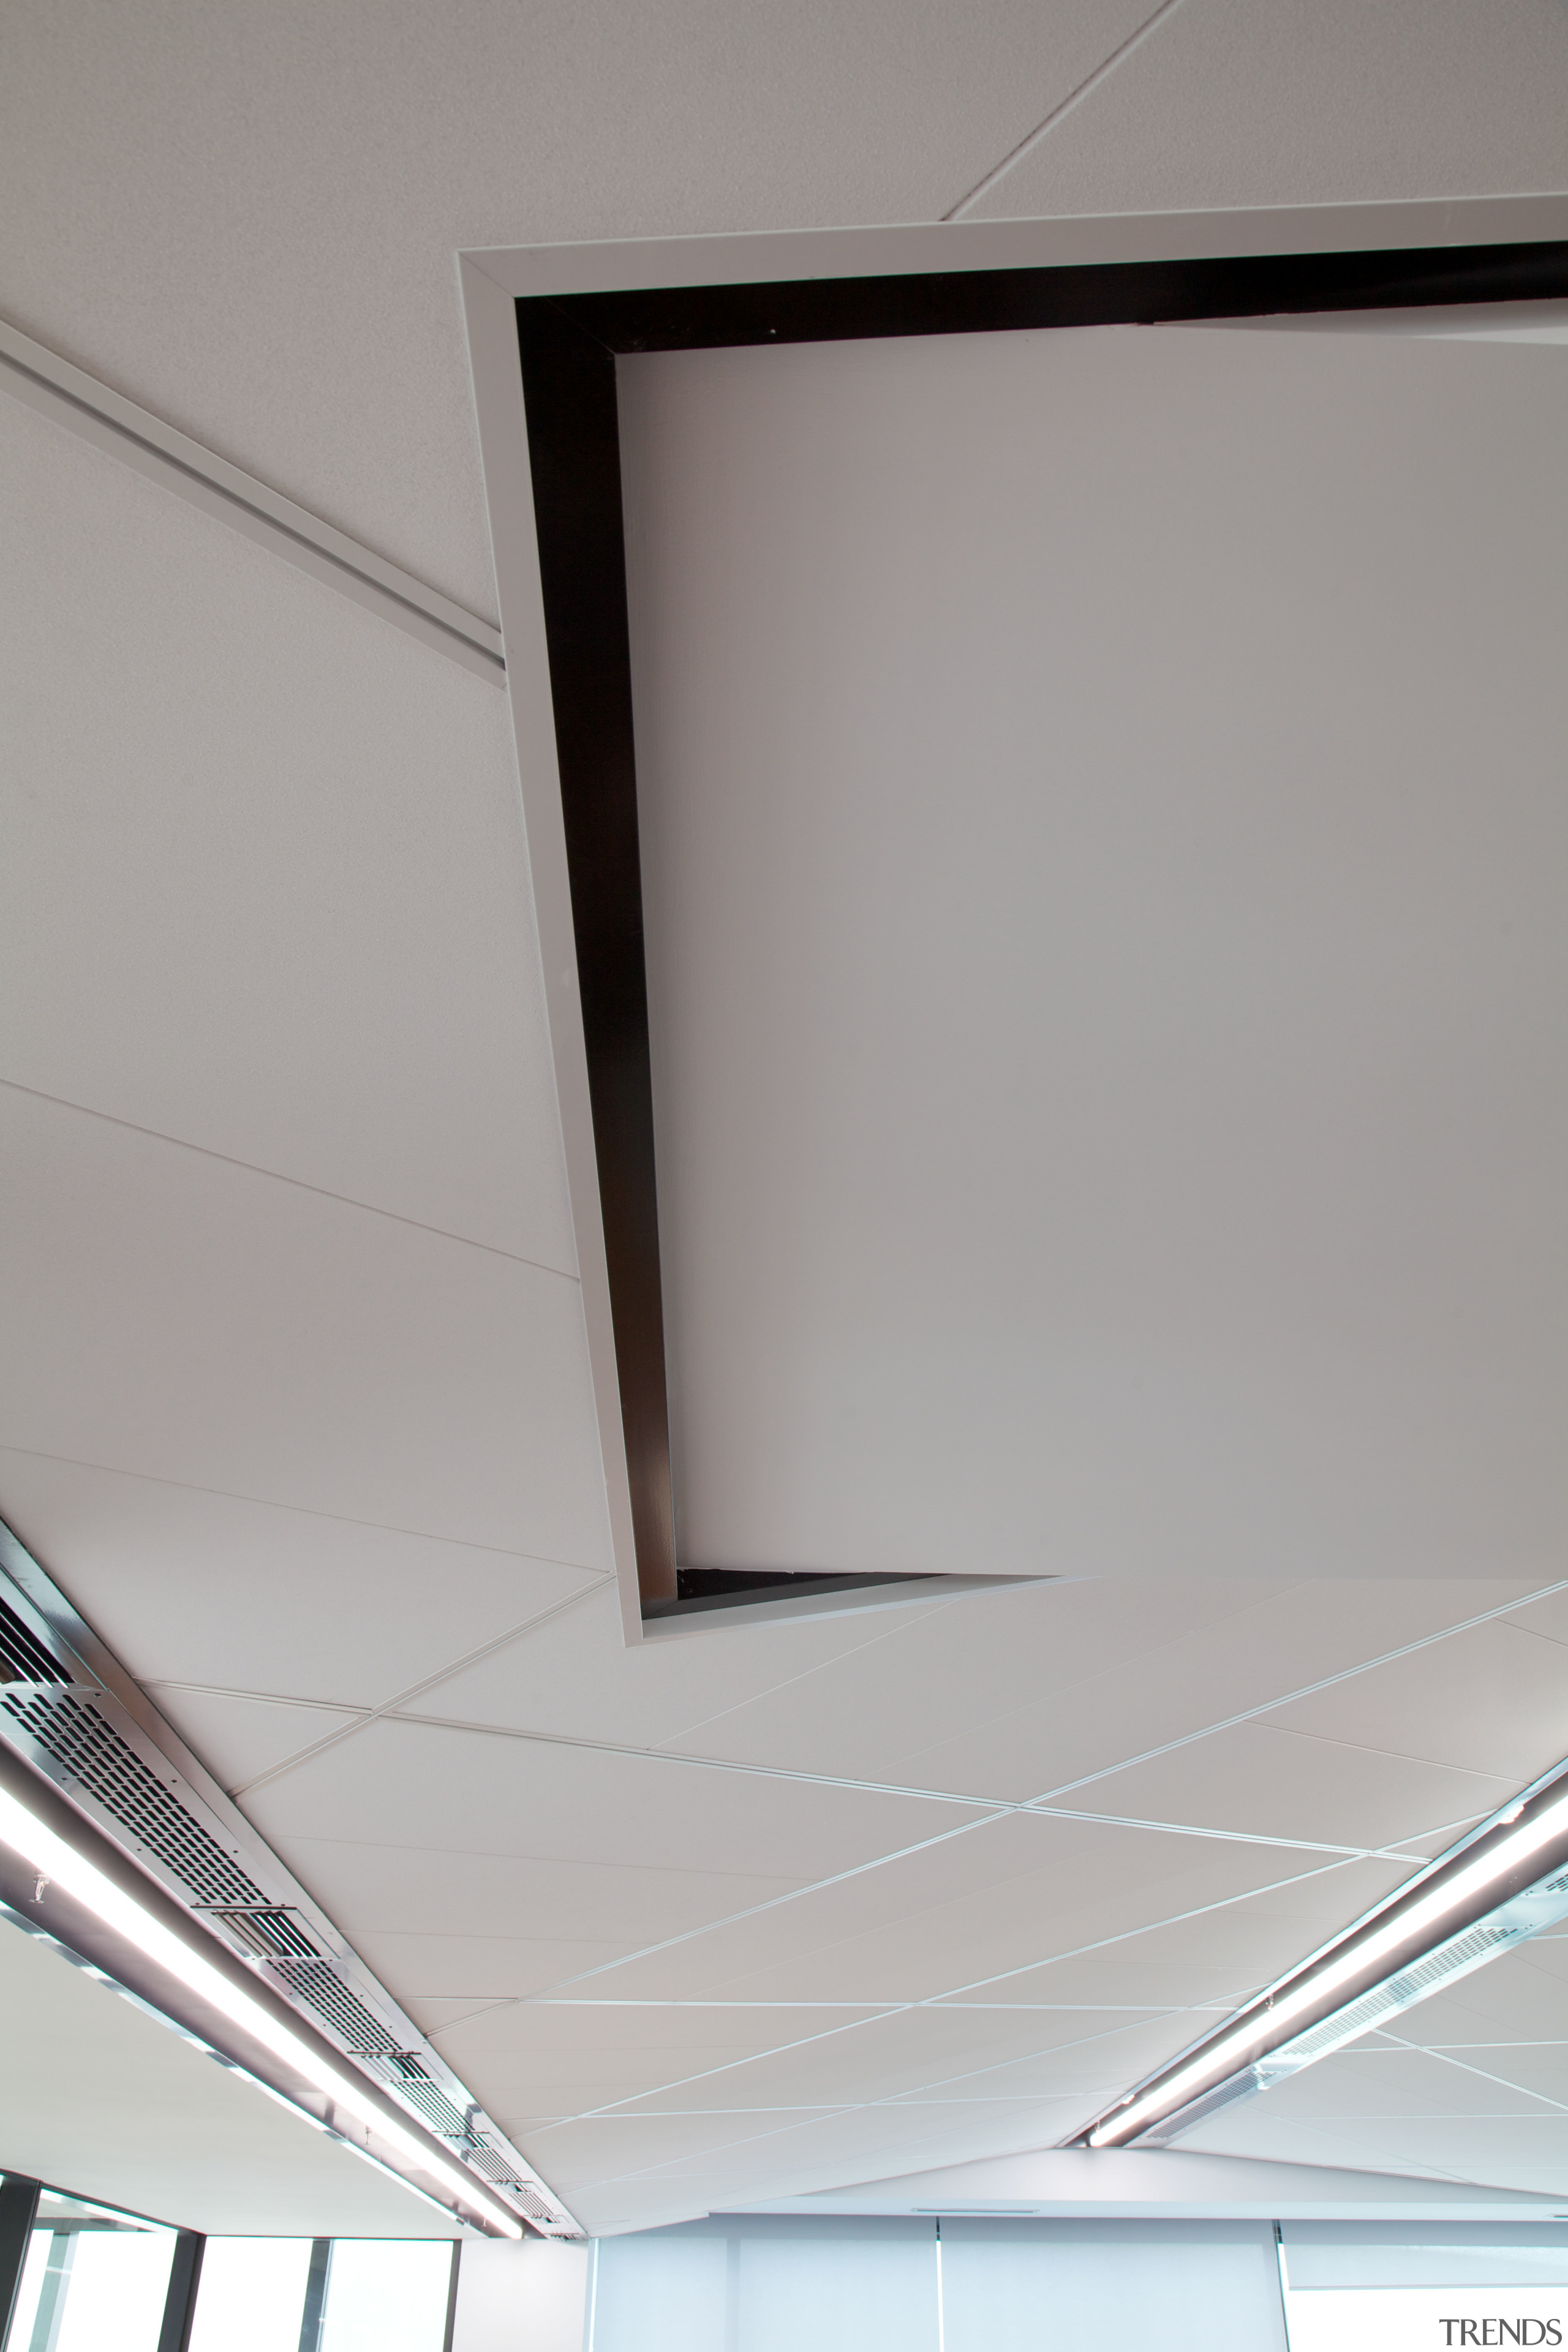 Above and beyond  the new Genesis Energy angle, architecture, ceiling, daylighting, glass, light, line, product design, window, gray